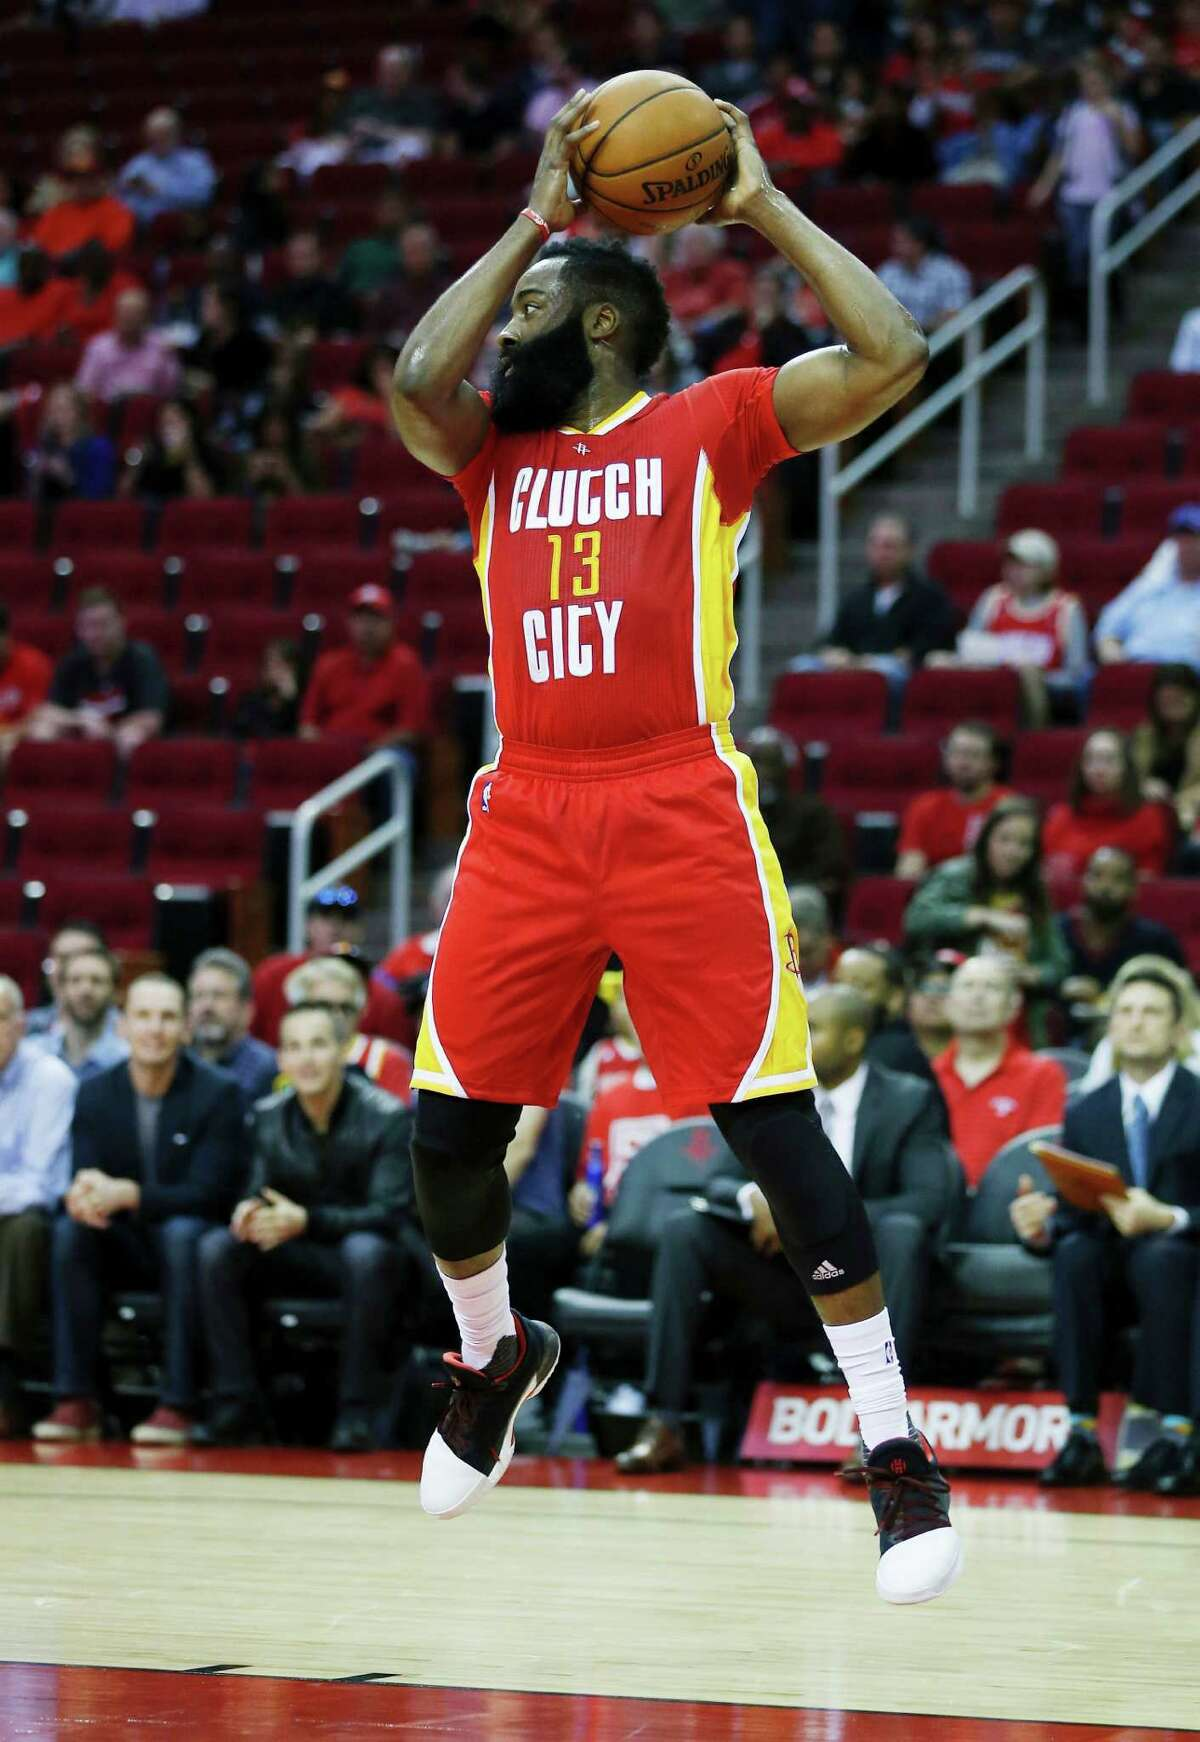 Houston Rockets guard James Harden (13) grabs a rebound against the Portland Trail Blazers in the first half of an NBA basketball game on Thursday, Nov. 17, 2016, in Houston. (AP Photo/Bob Levey)